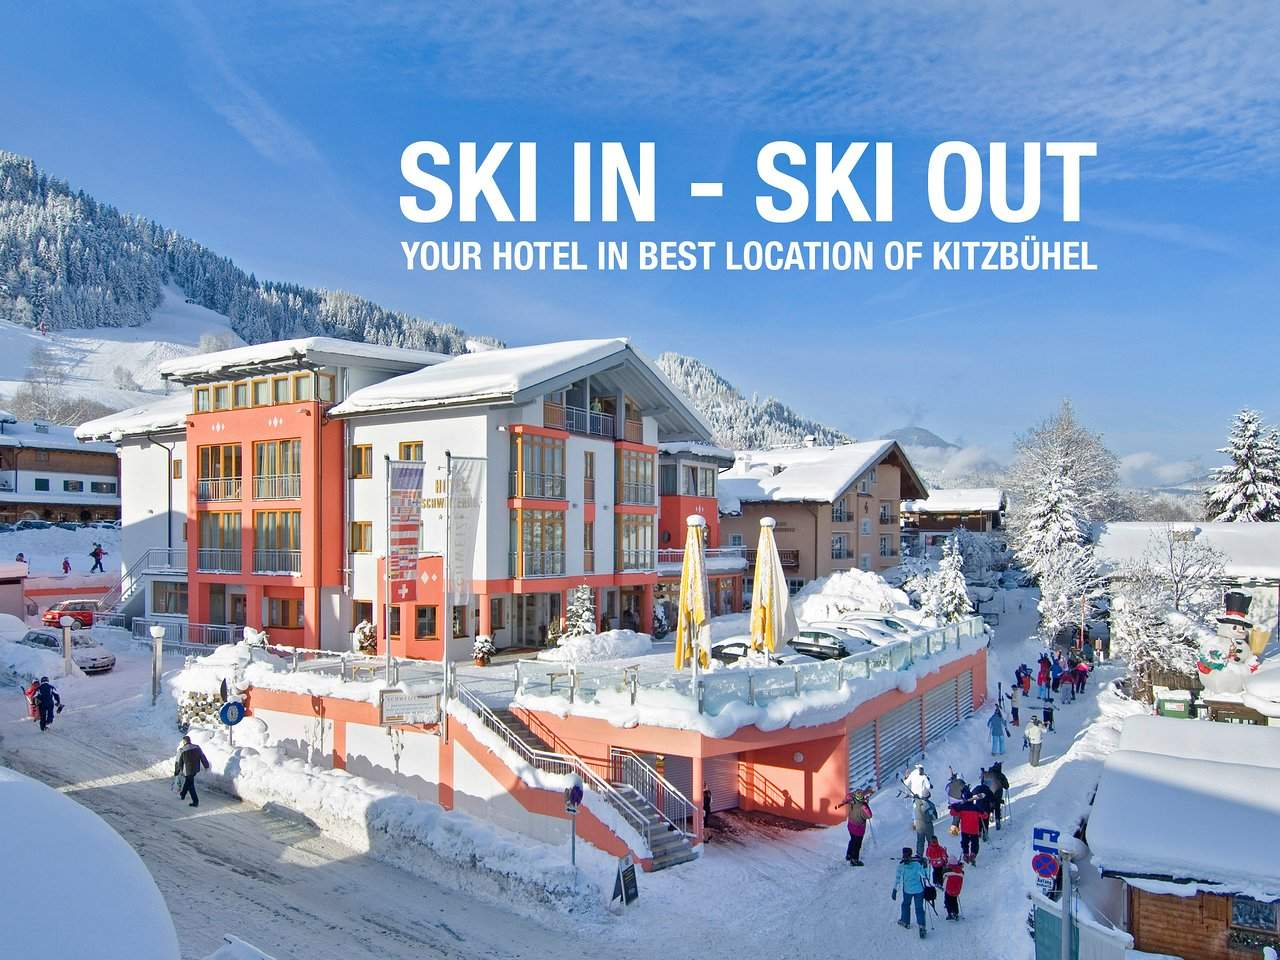 ski in ski out best location